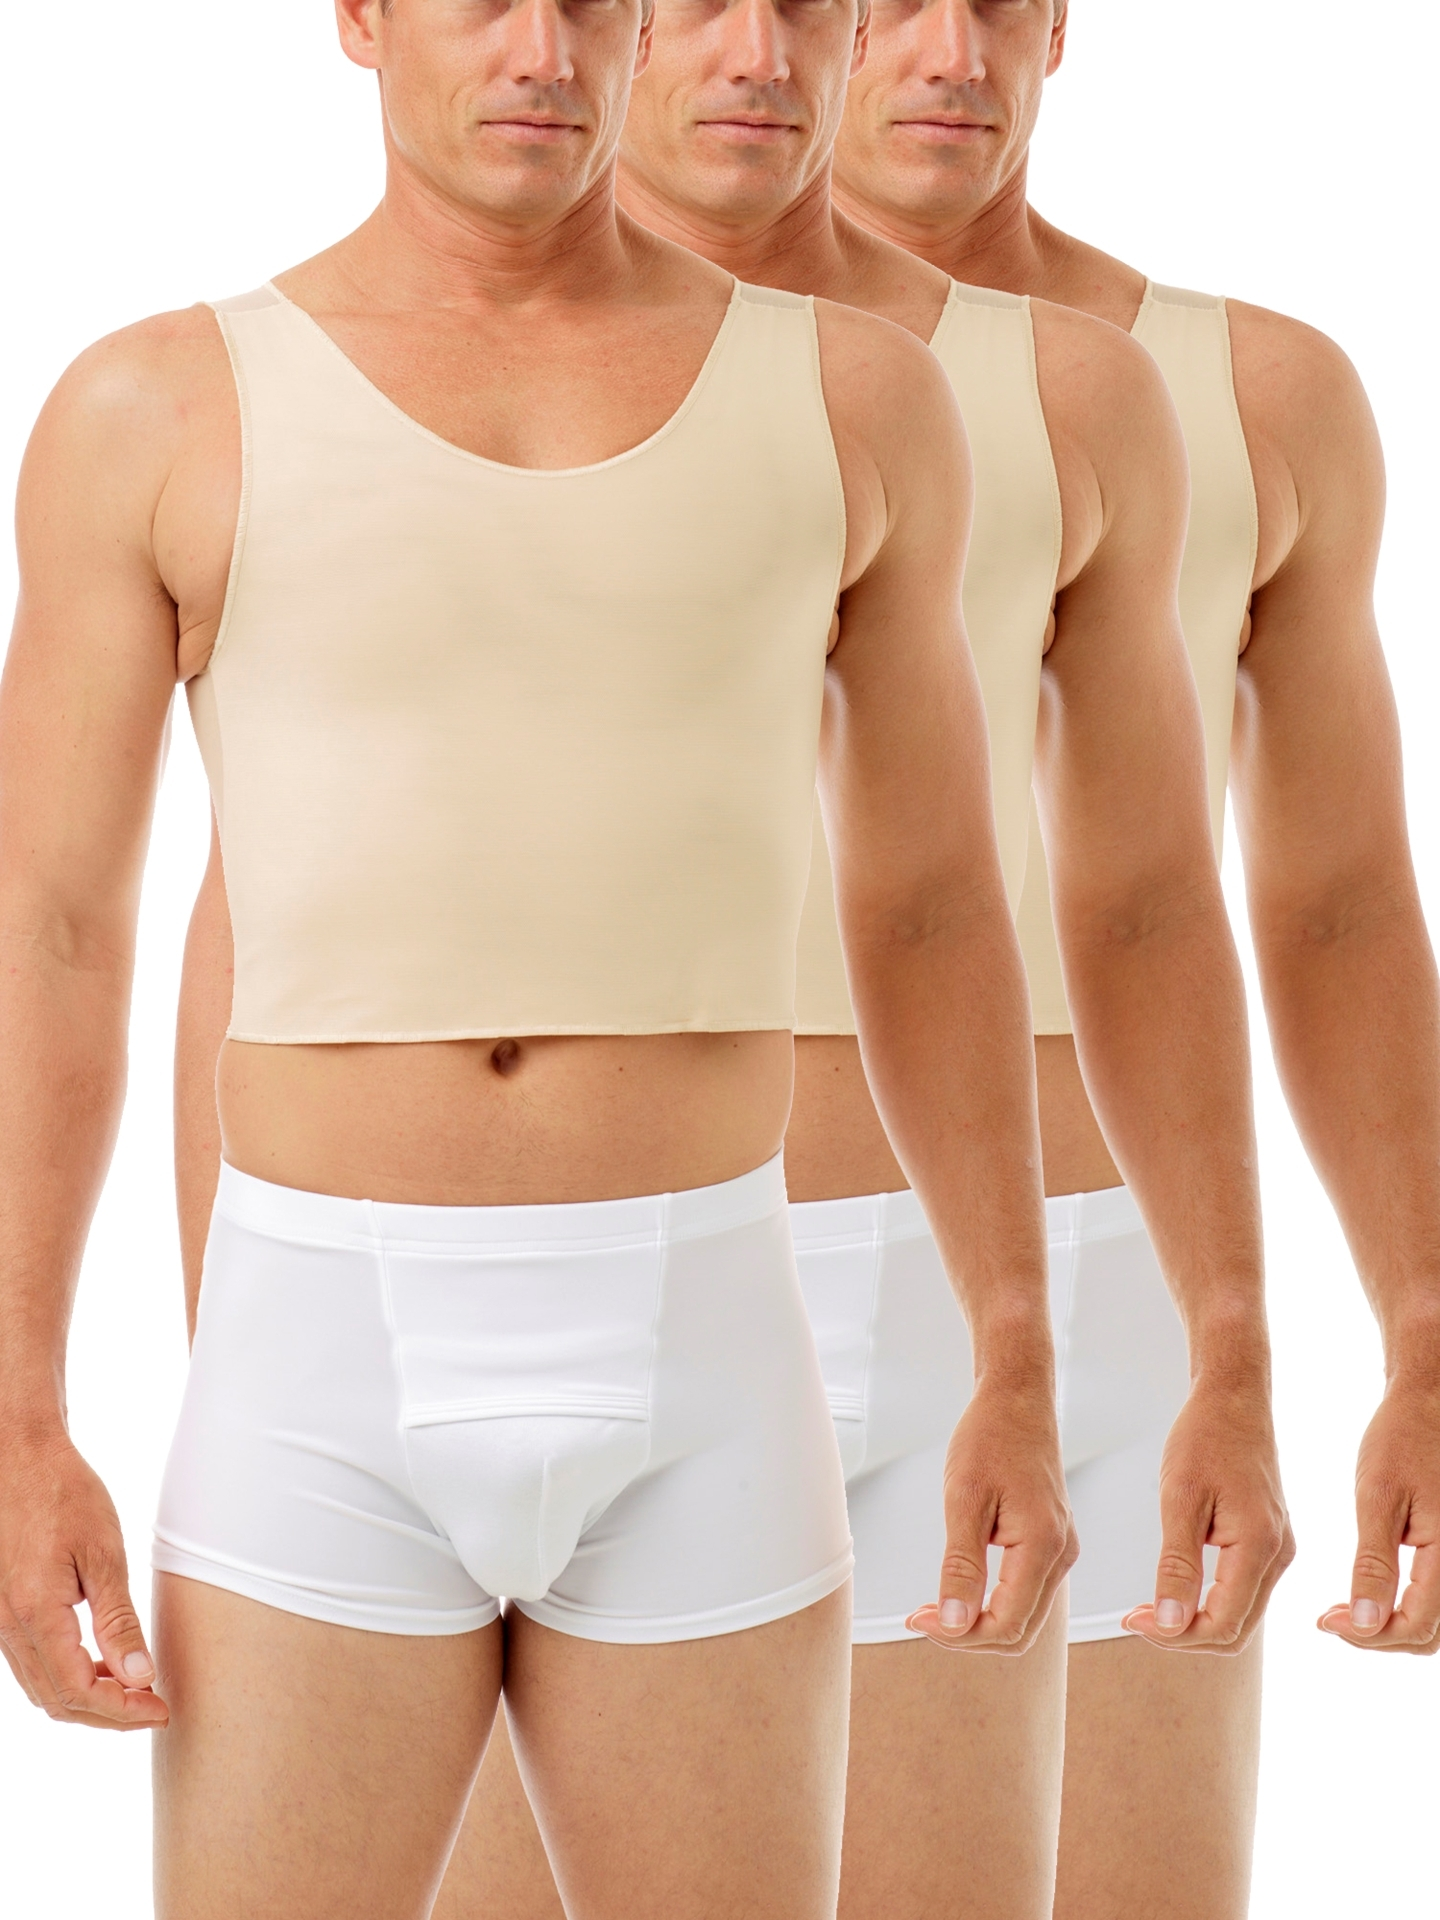 Picture of Tri-top Chest Binder 3-Pack